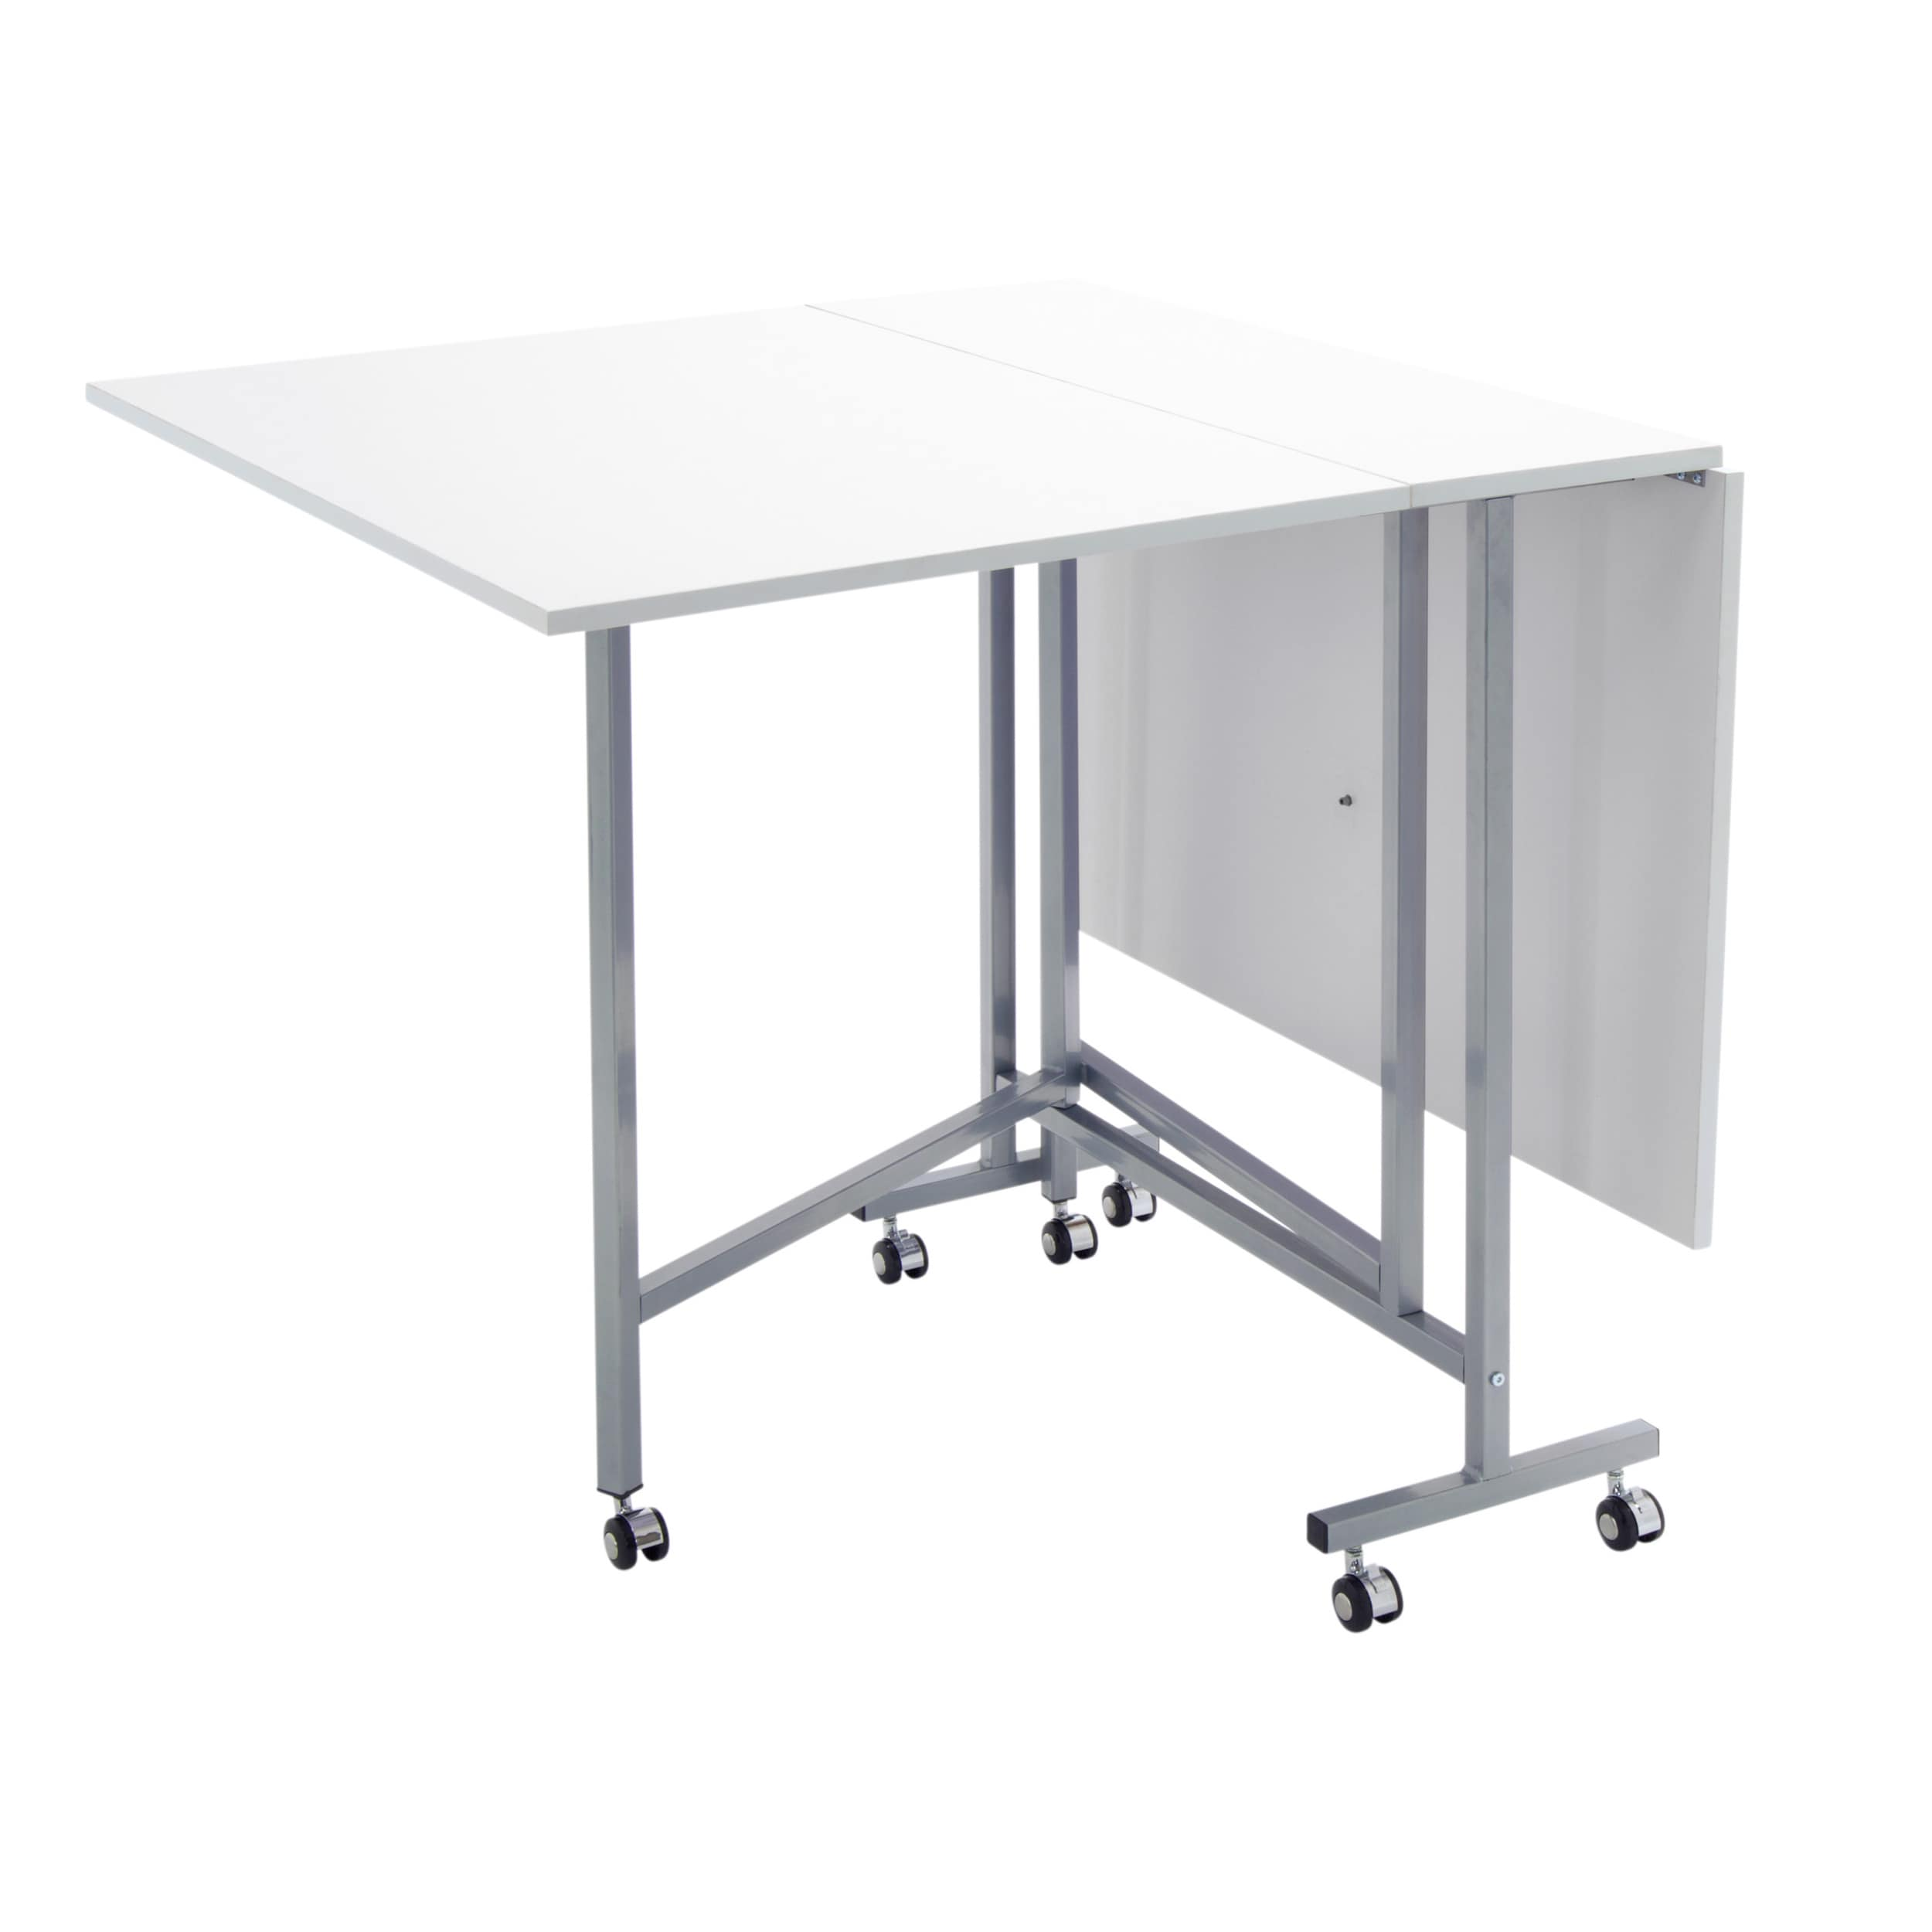 Charmant Shop Studio Designs White Powder Coated Craft And Cutting Sewing Table    Free Shipping Today   Overstock.com   12884533